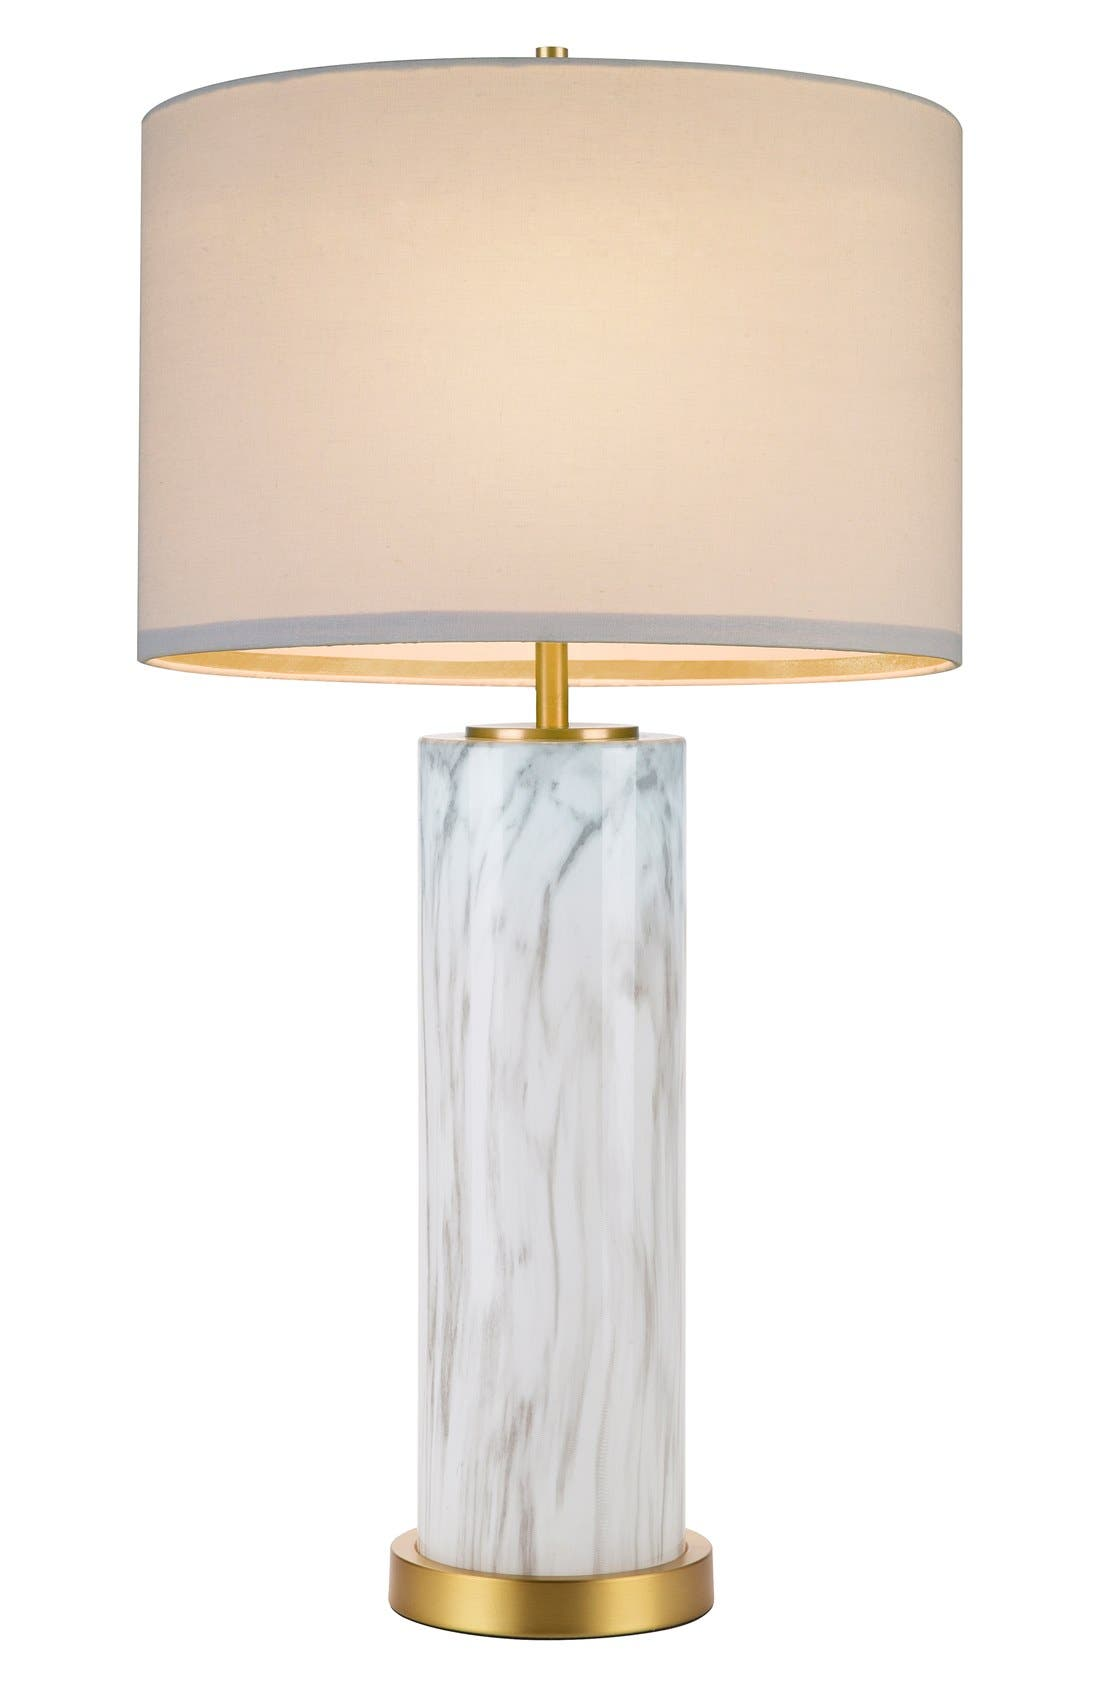 Main Image - cupcakes and cashmere Marble Column Table Lamp